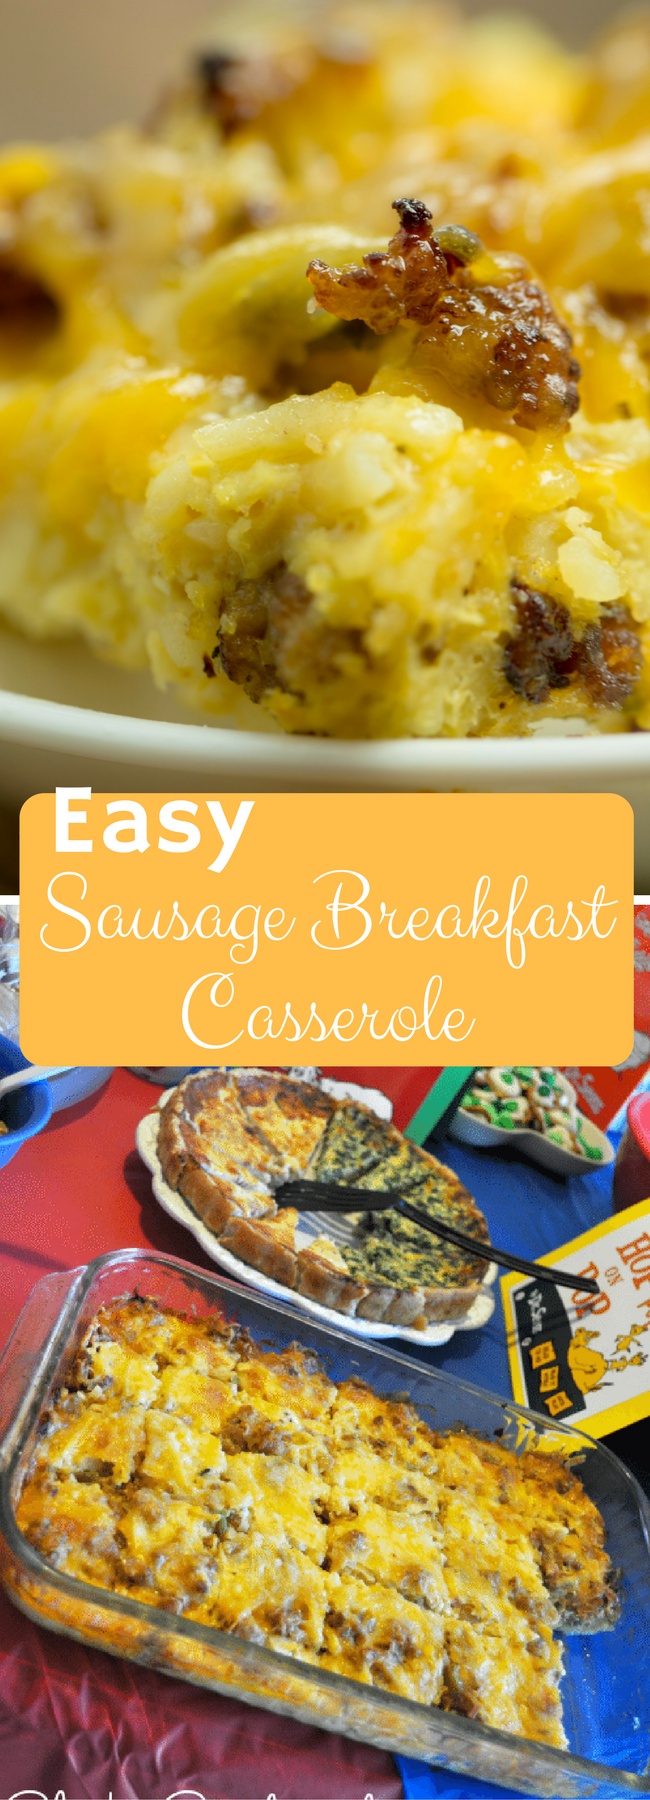 breakfast casserole / breakfast casserole recipes / breakfast casserole with hashbrowns /breakfast casserole sausage / make ahead breakfast casserole via @clarkscondensed